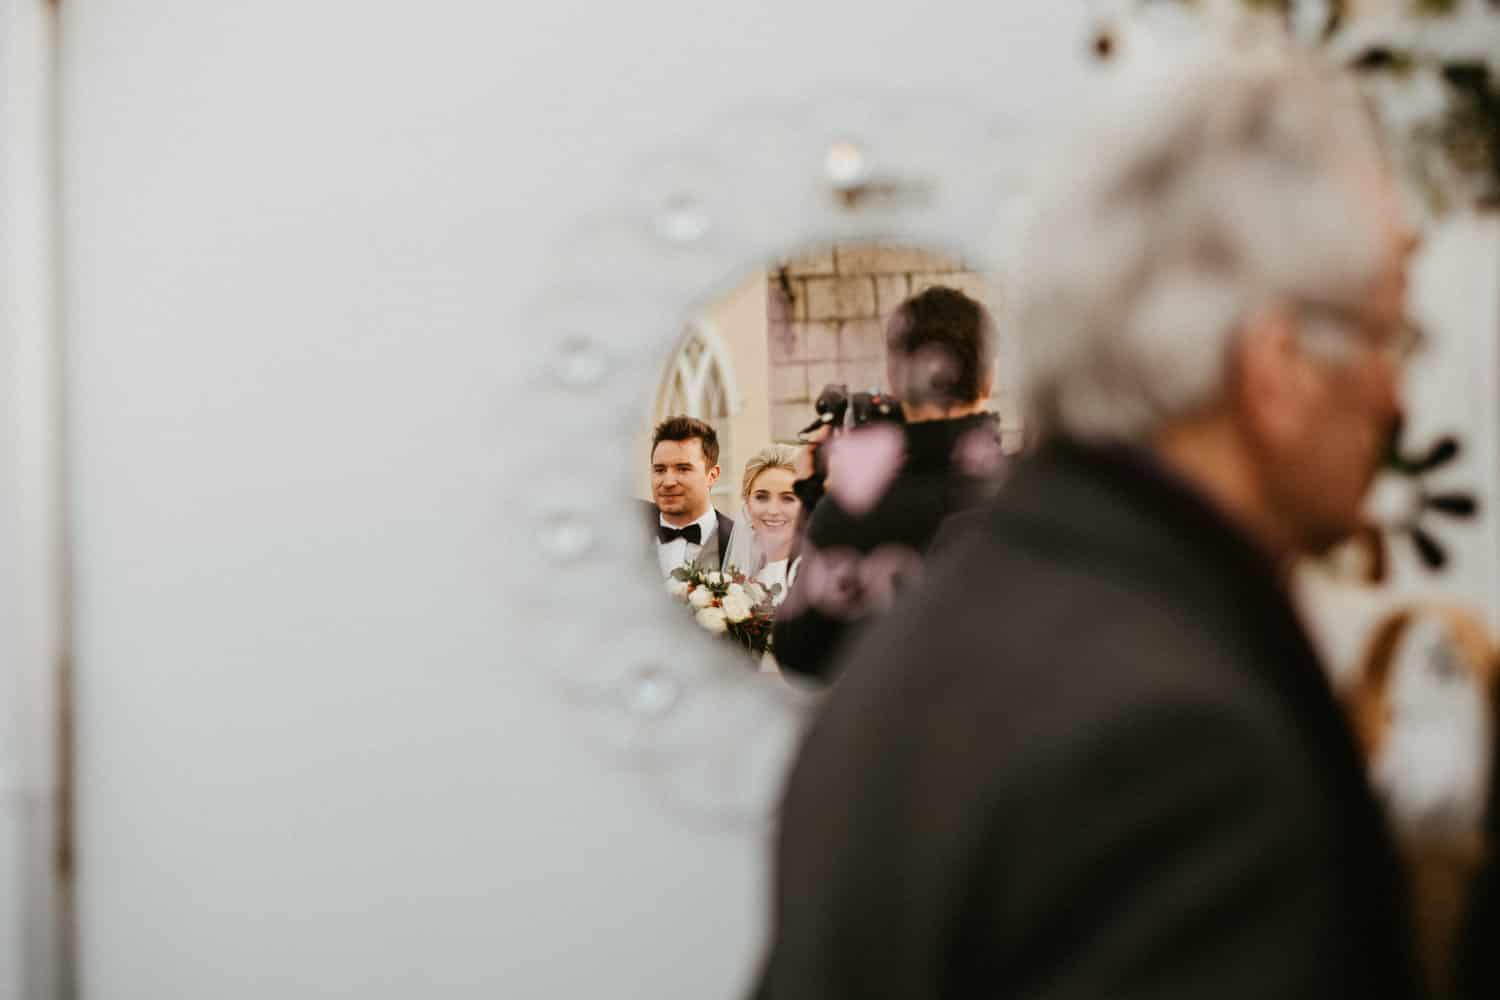 bride and groom reflection in a mirror